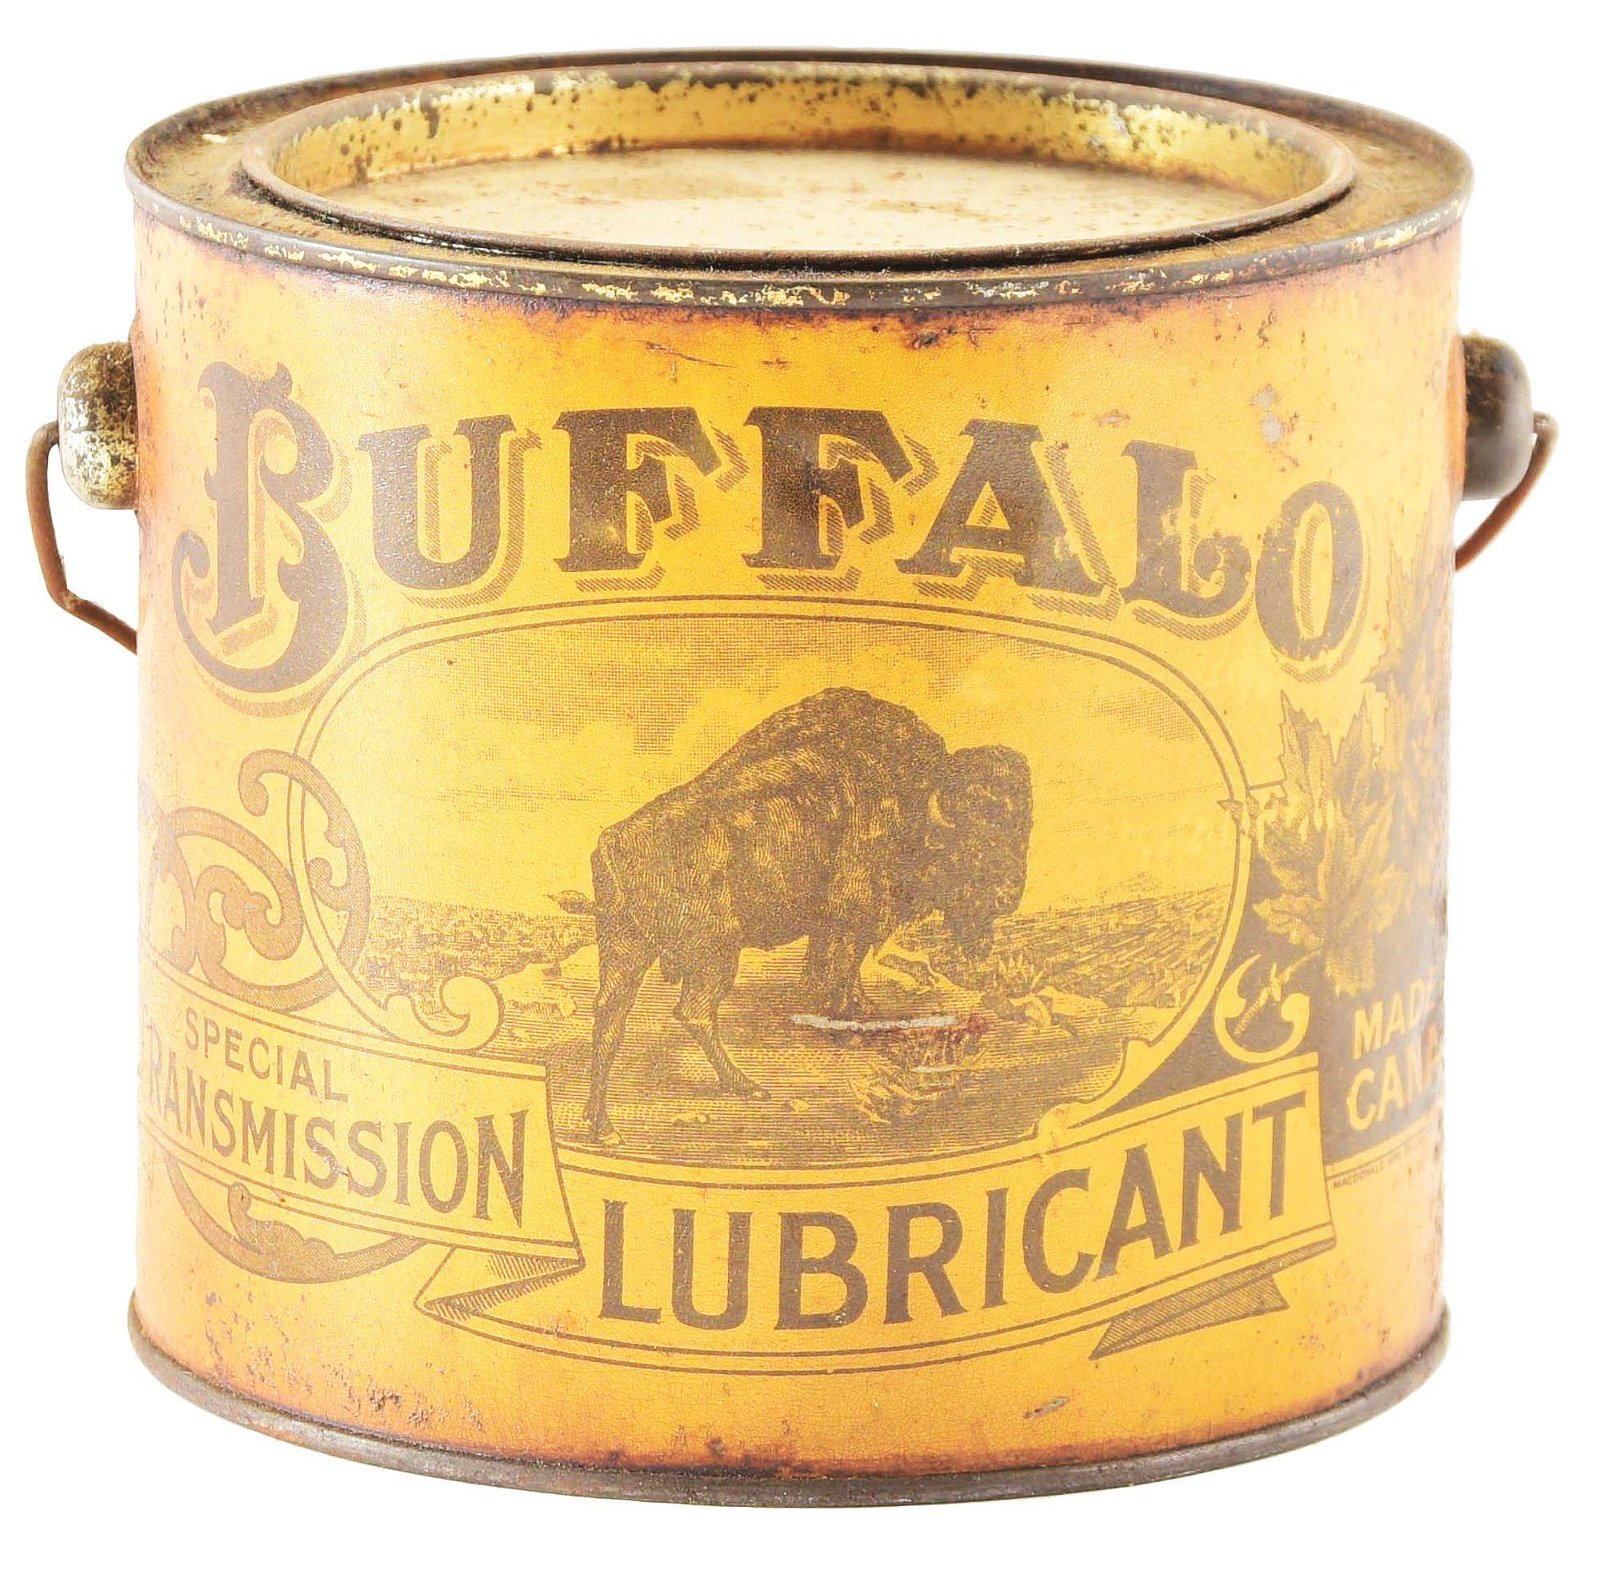 Buffalo Special Transmission Lubricant Grease Can.